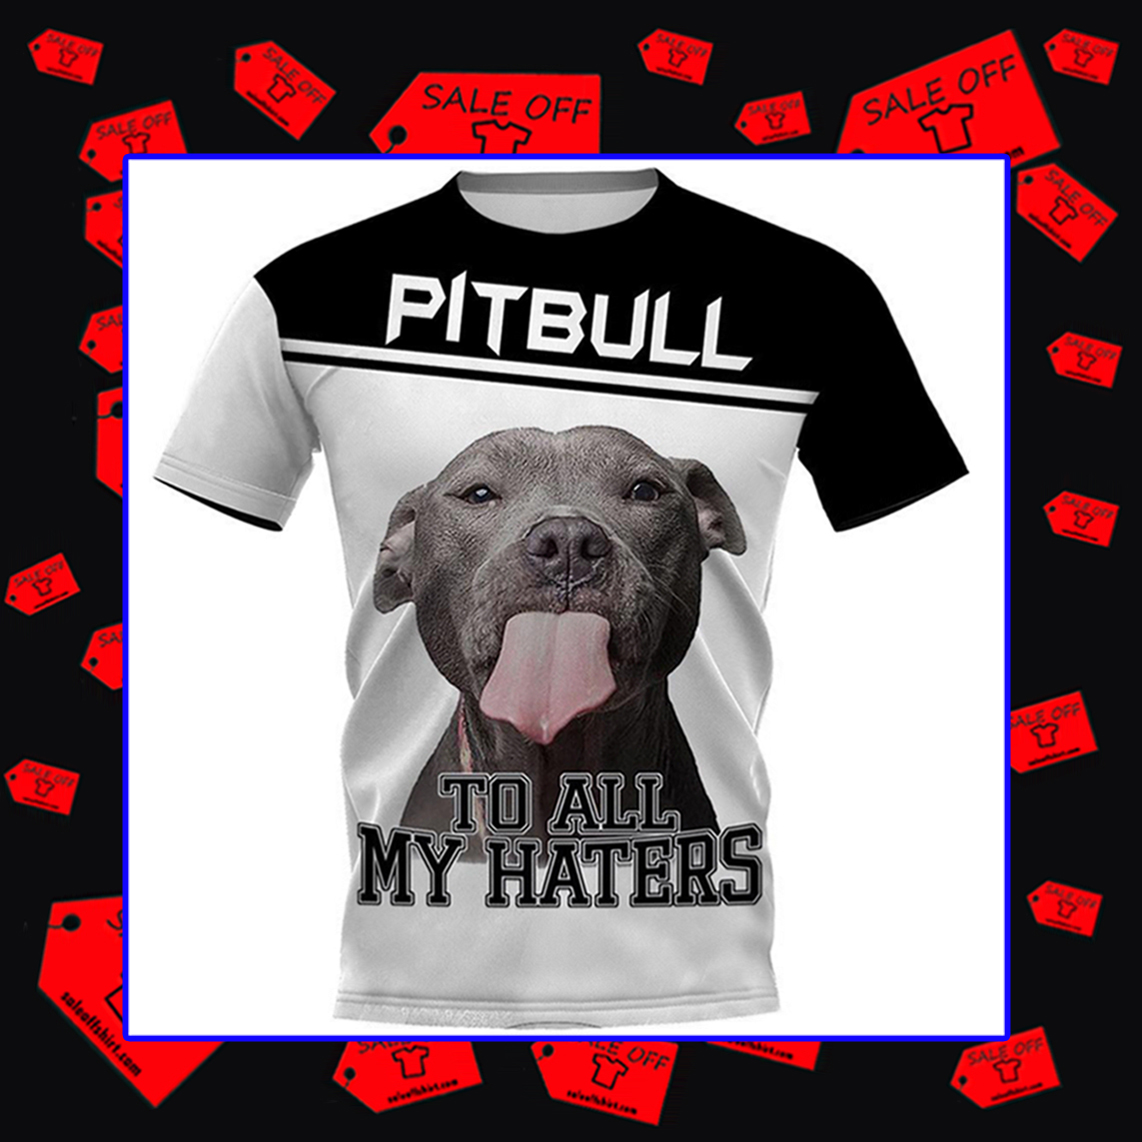 Pitbull To All My Haters shirt 3d